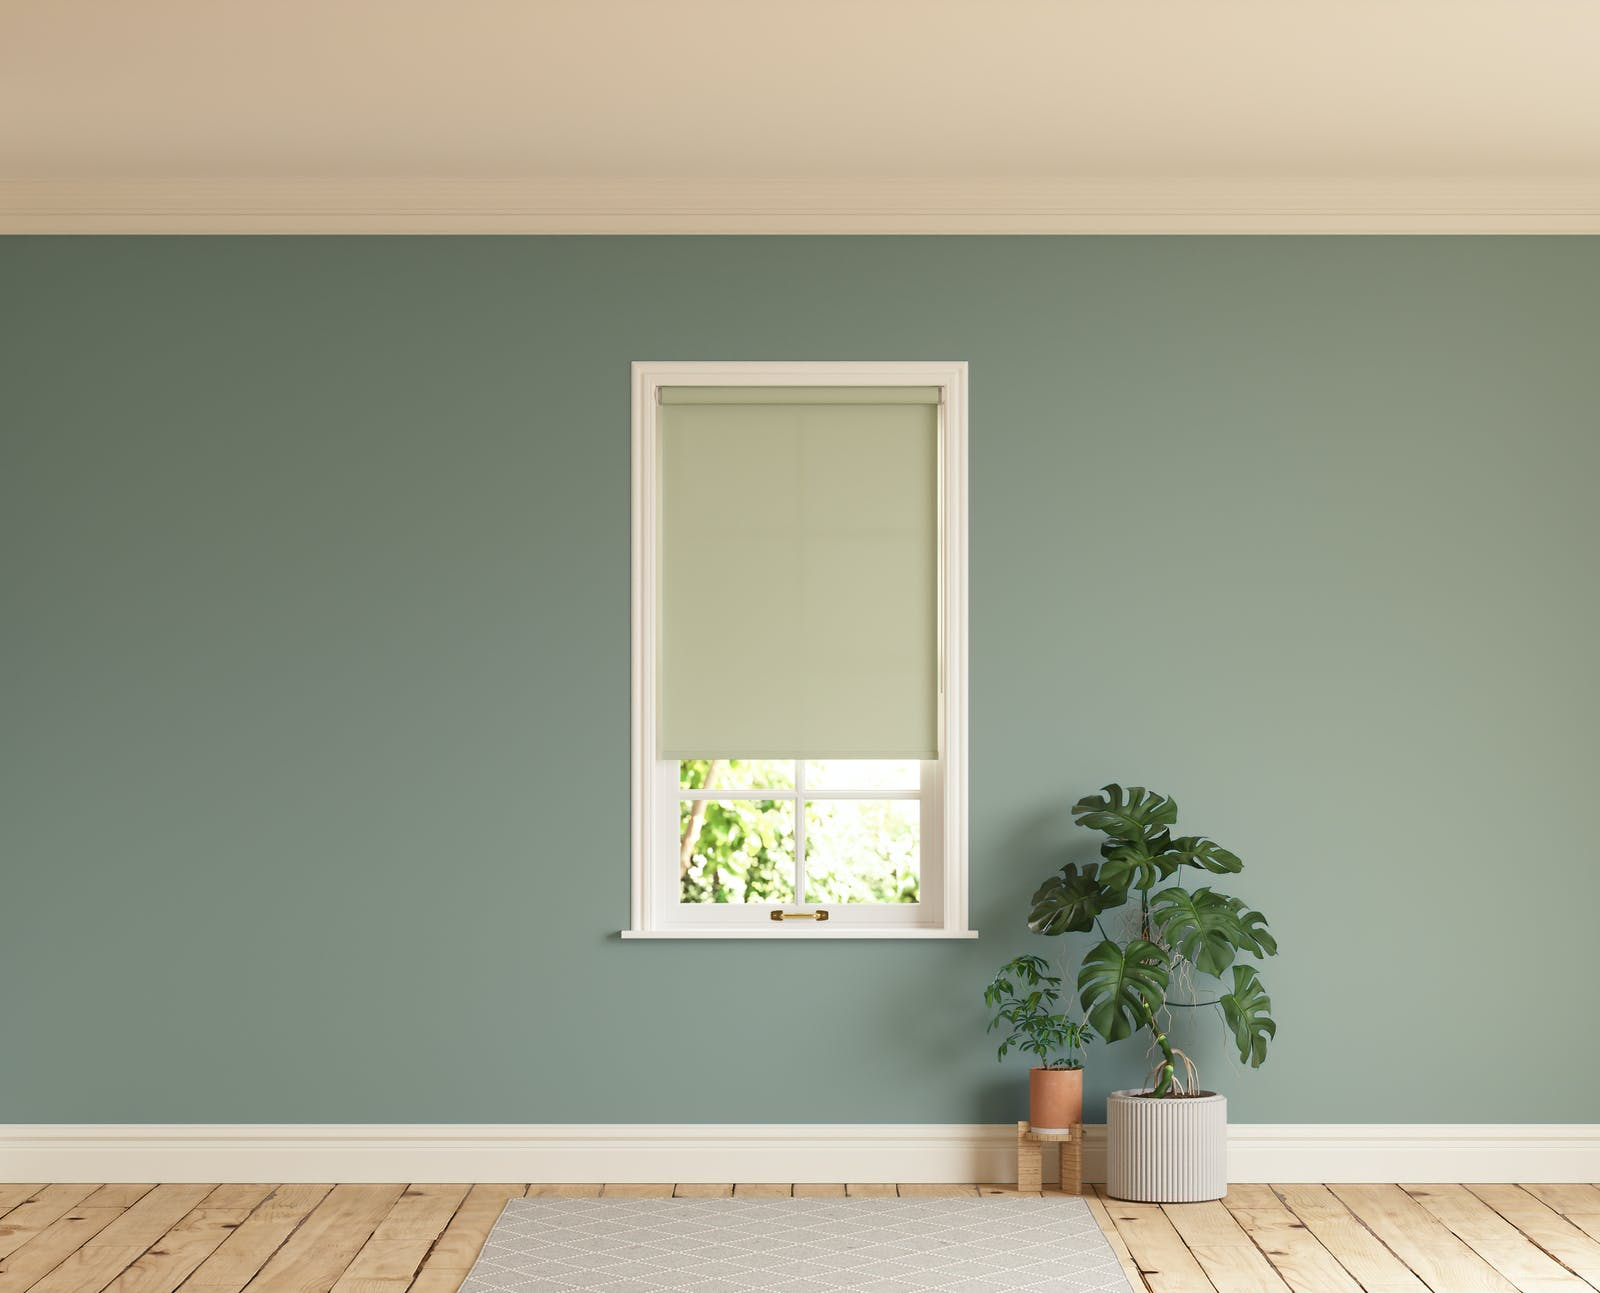 Room with walls painted in Lick Green 02 and Green 01 roller blinds